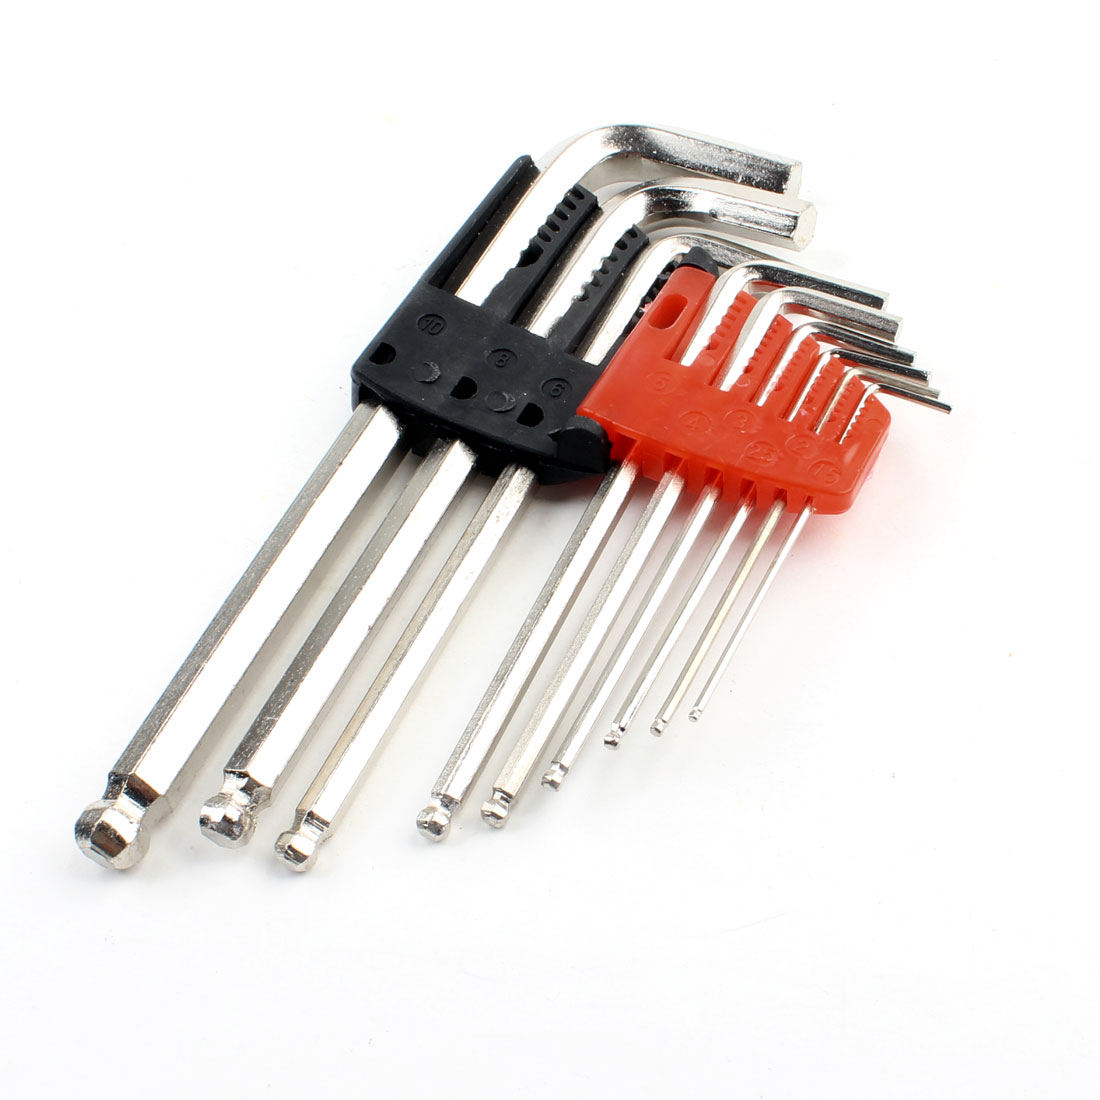 9 in 1 Set Silver Tone 1.5mm-10mm Hexagon Hex Key Wrench Handy Driver Tool